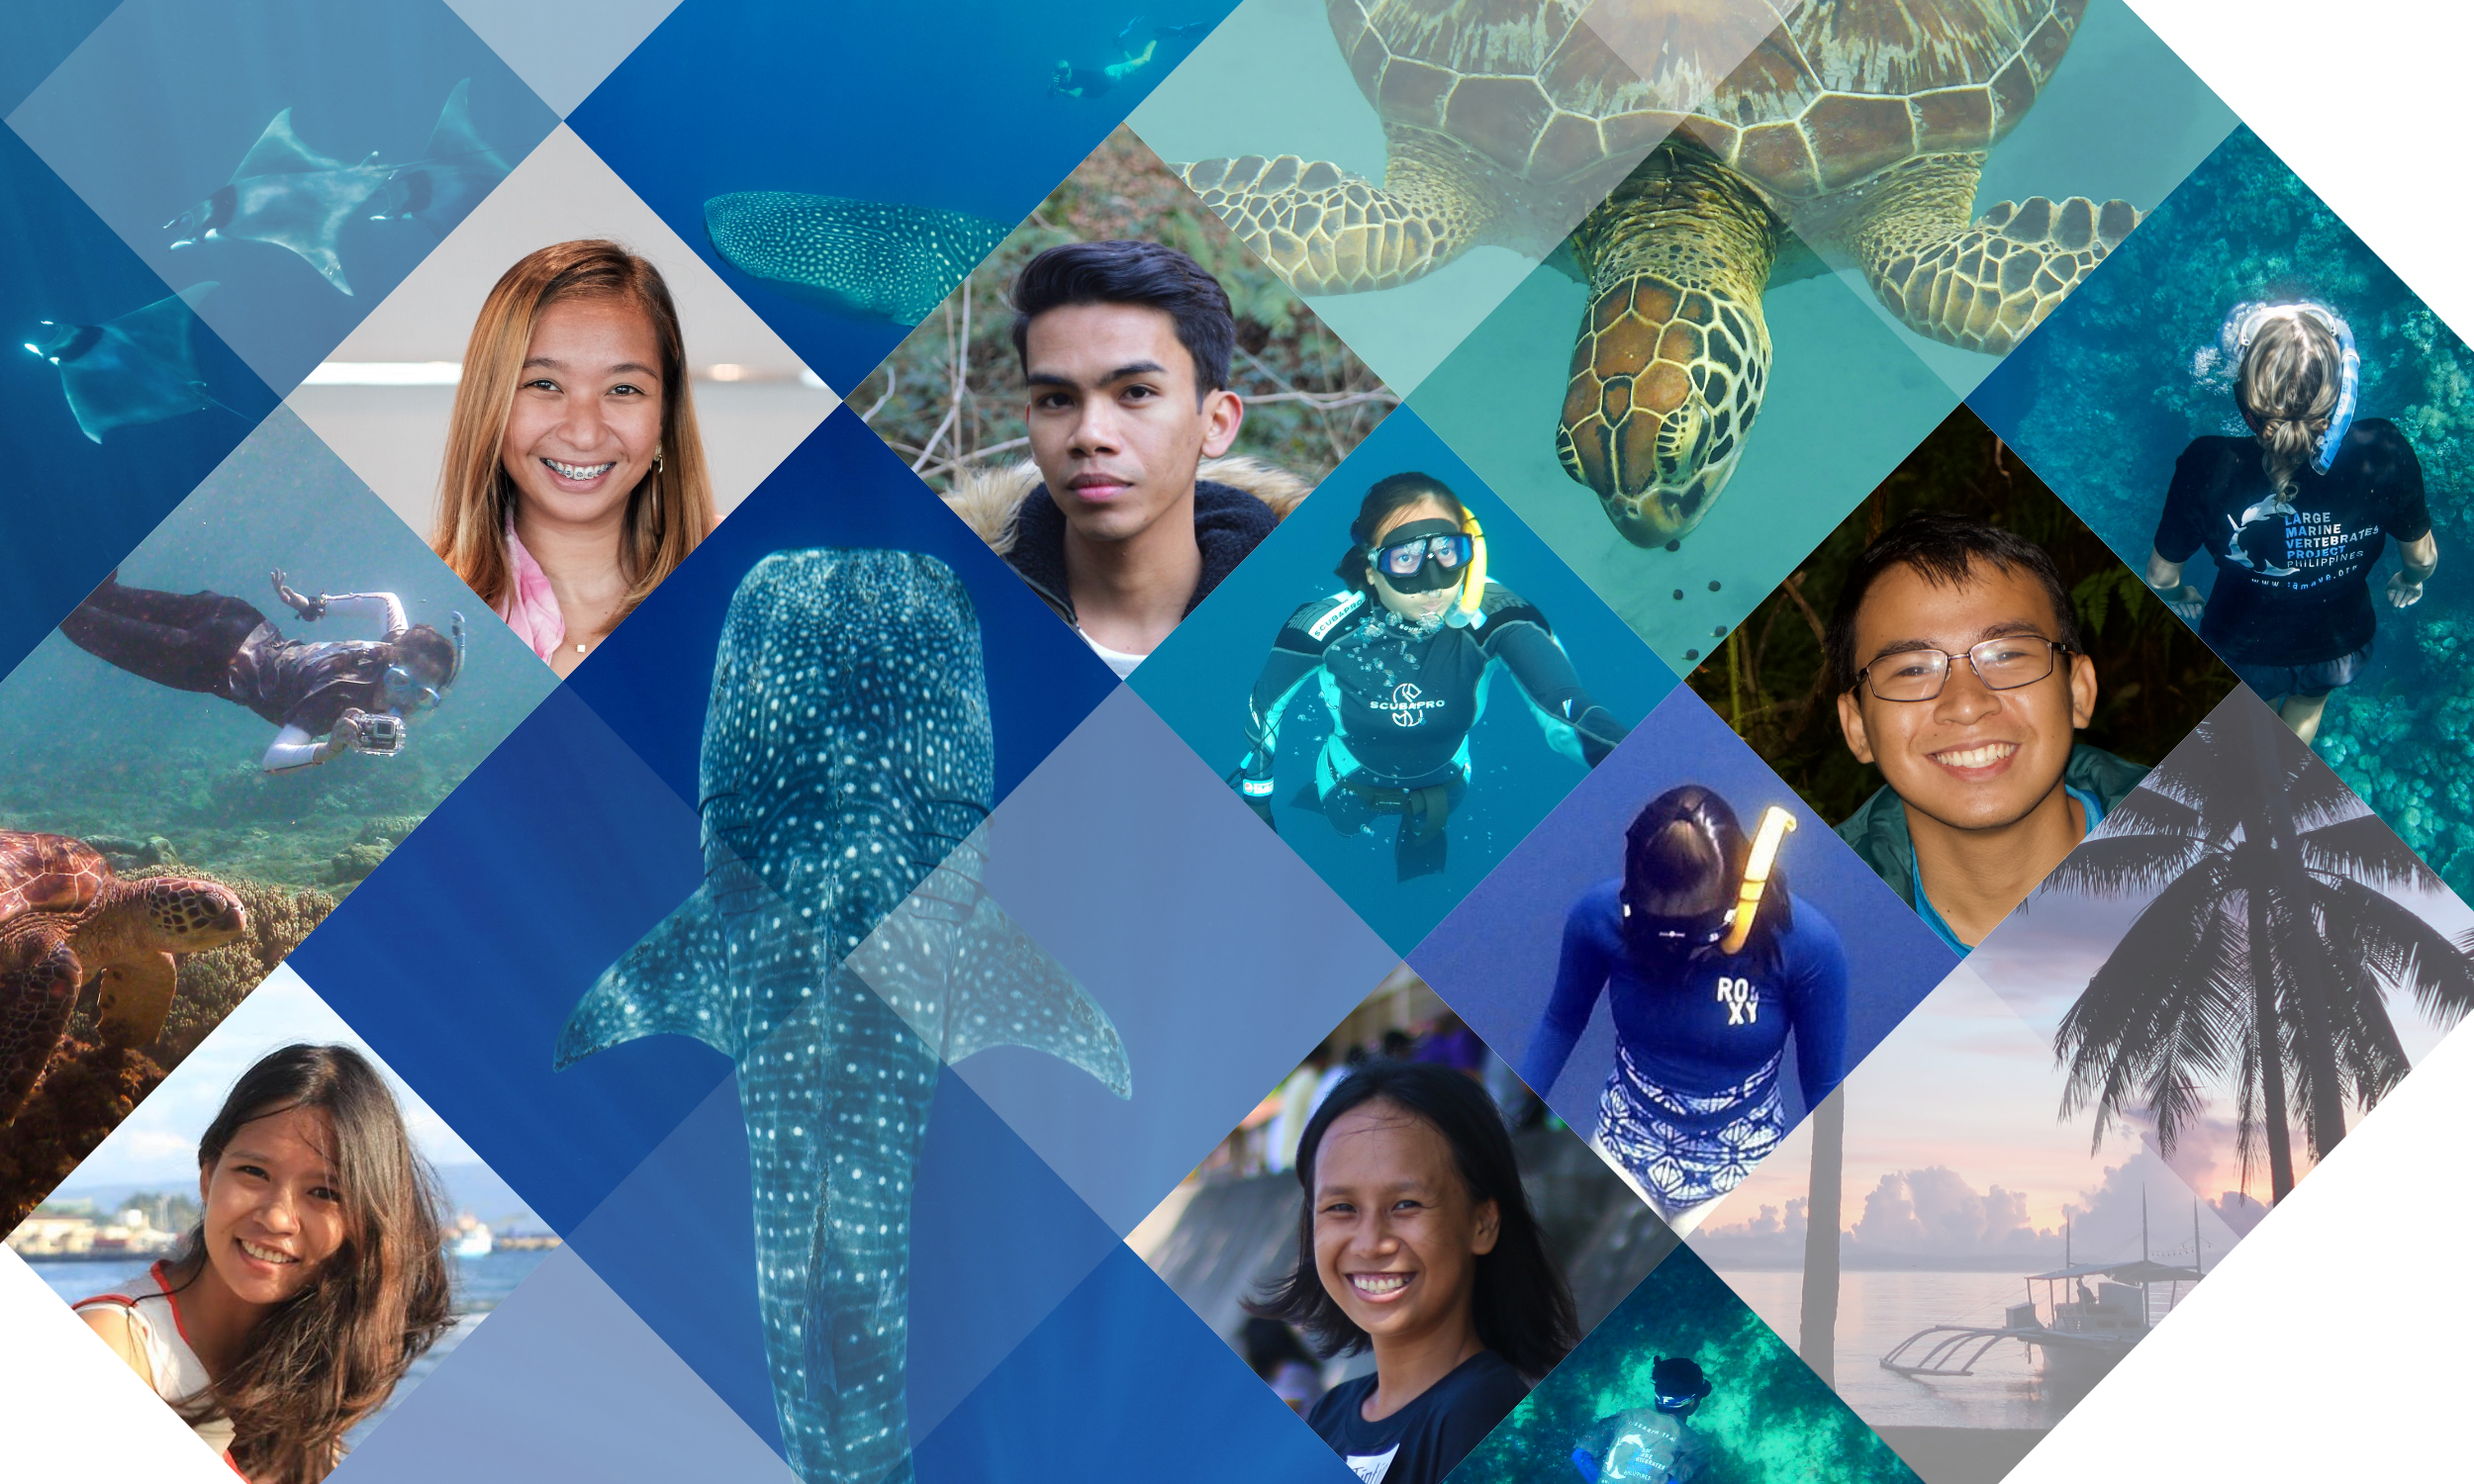 MGA ISKOLAR NG DAGAT - THE MARINE CONSERVATIONISTS OF THE FUTURE